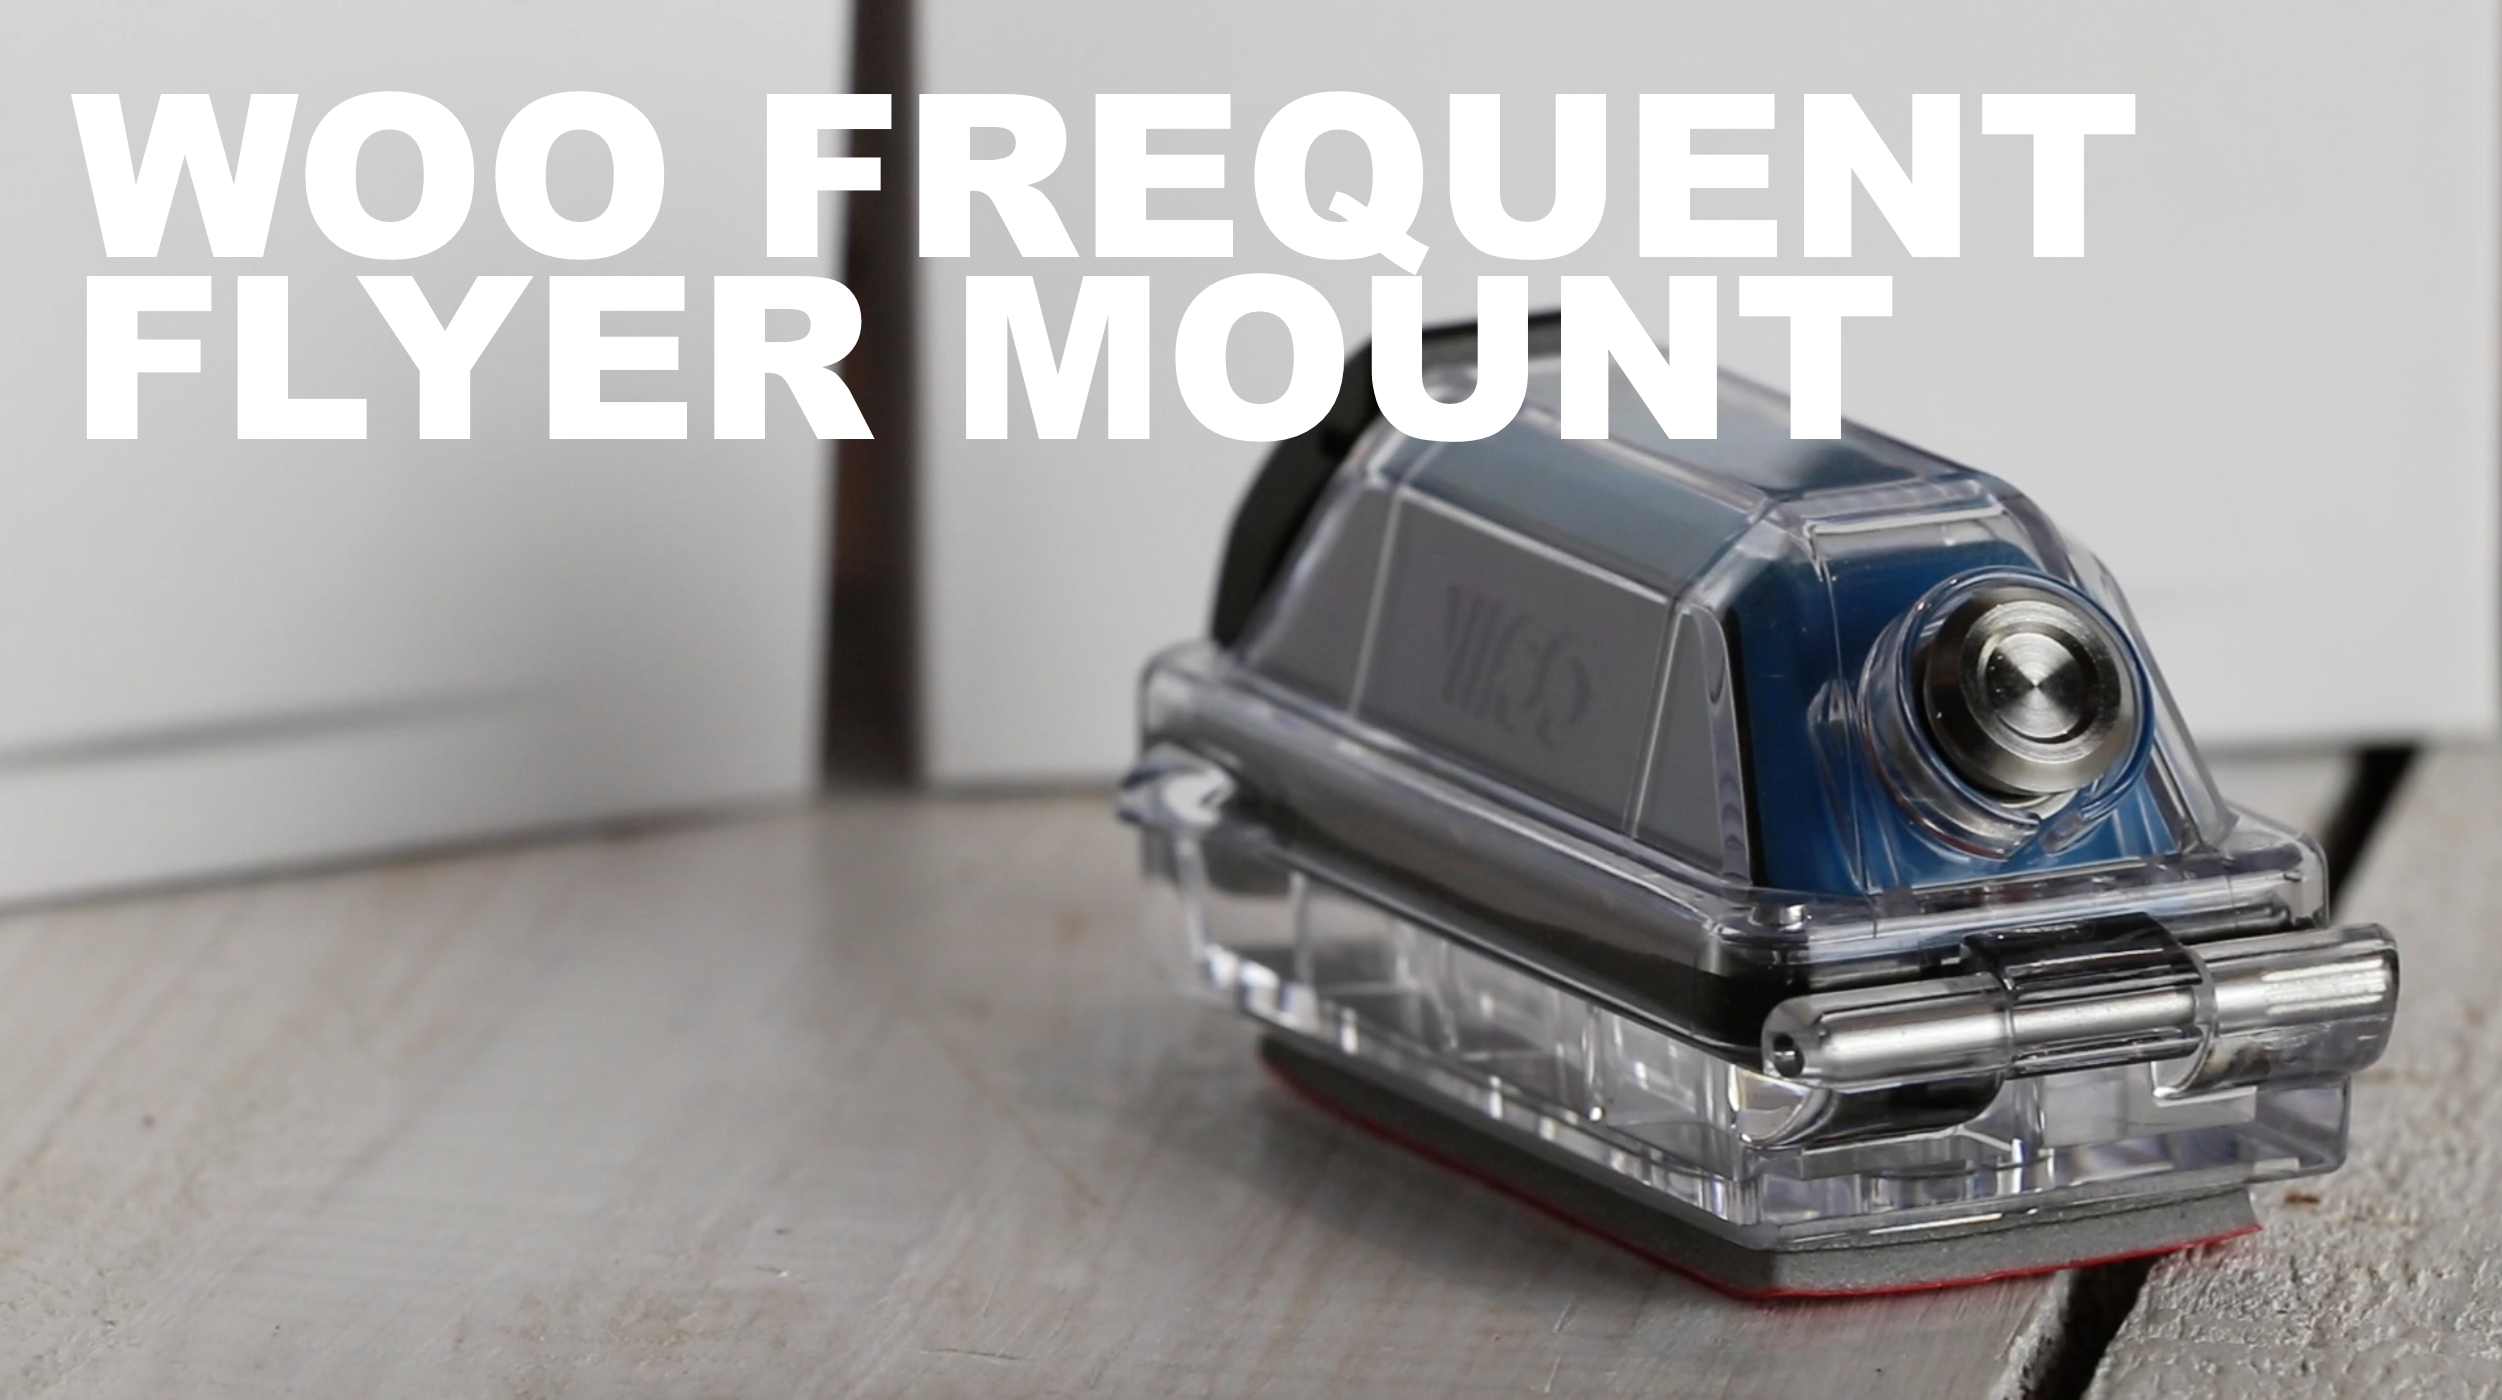 WOO FREQUENT FLYER MOUNT